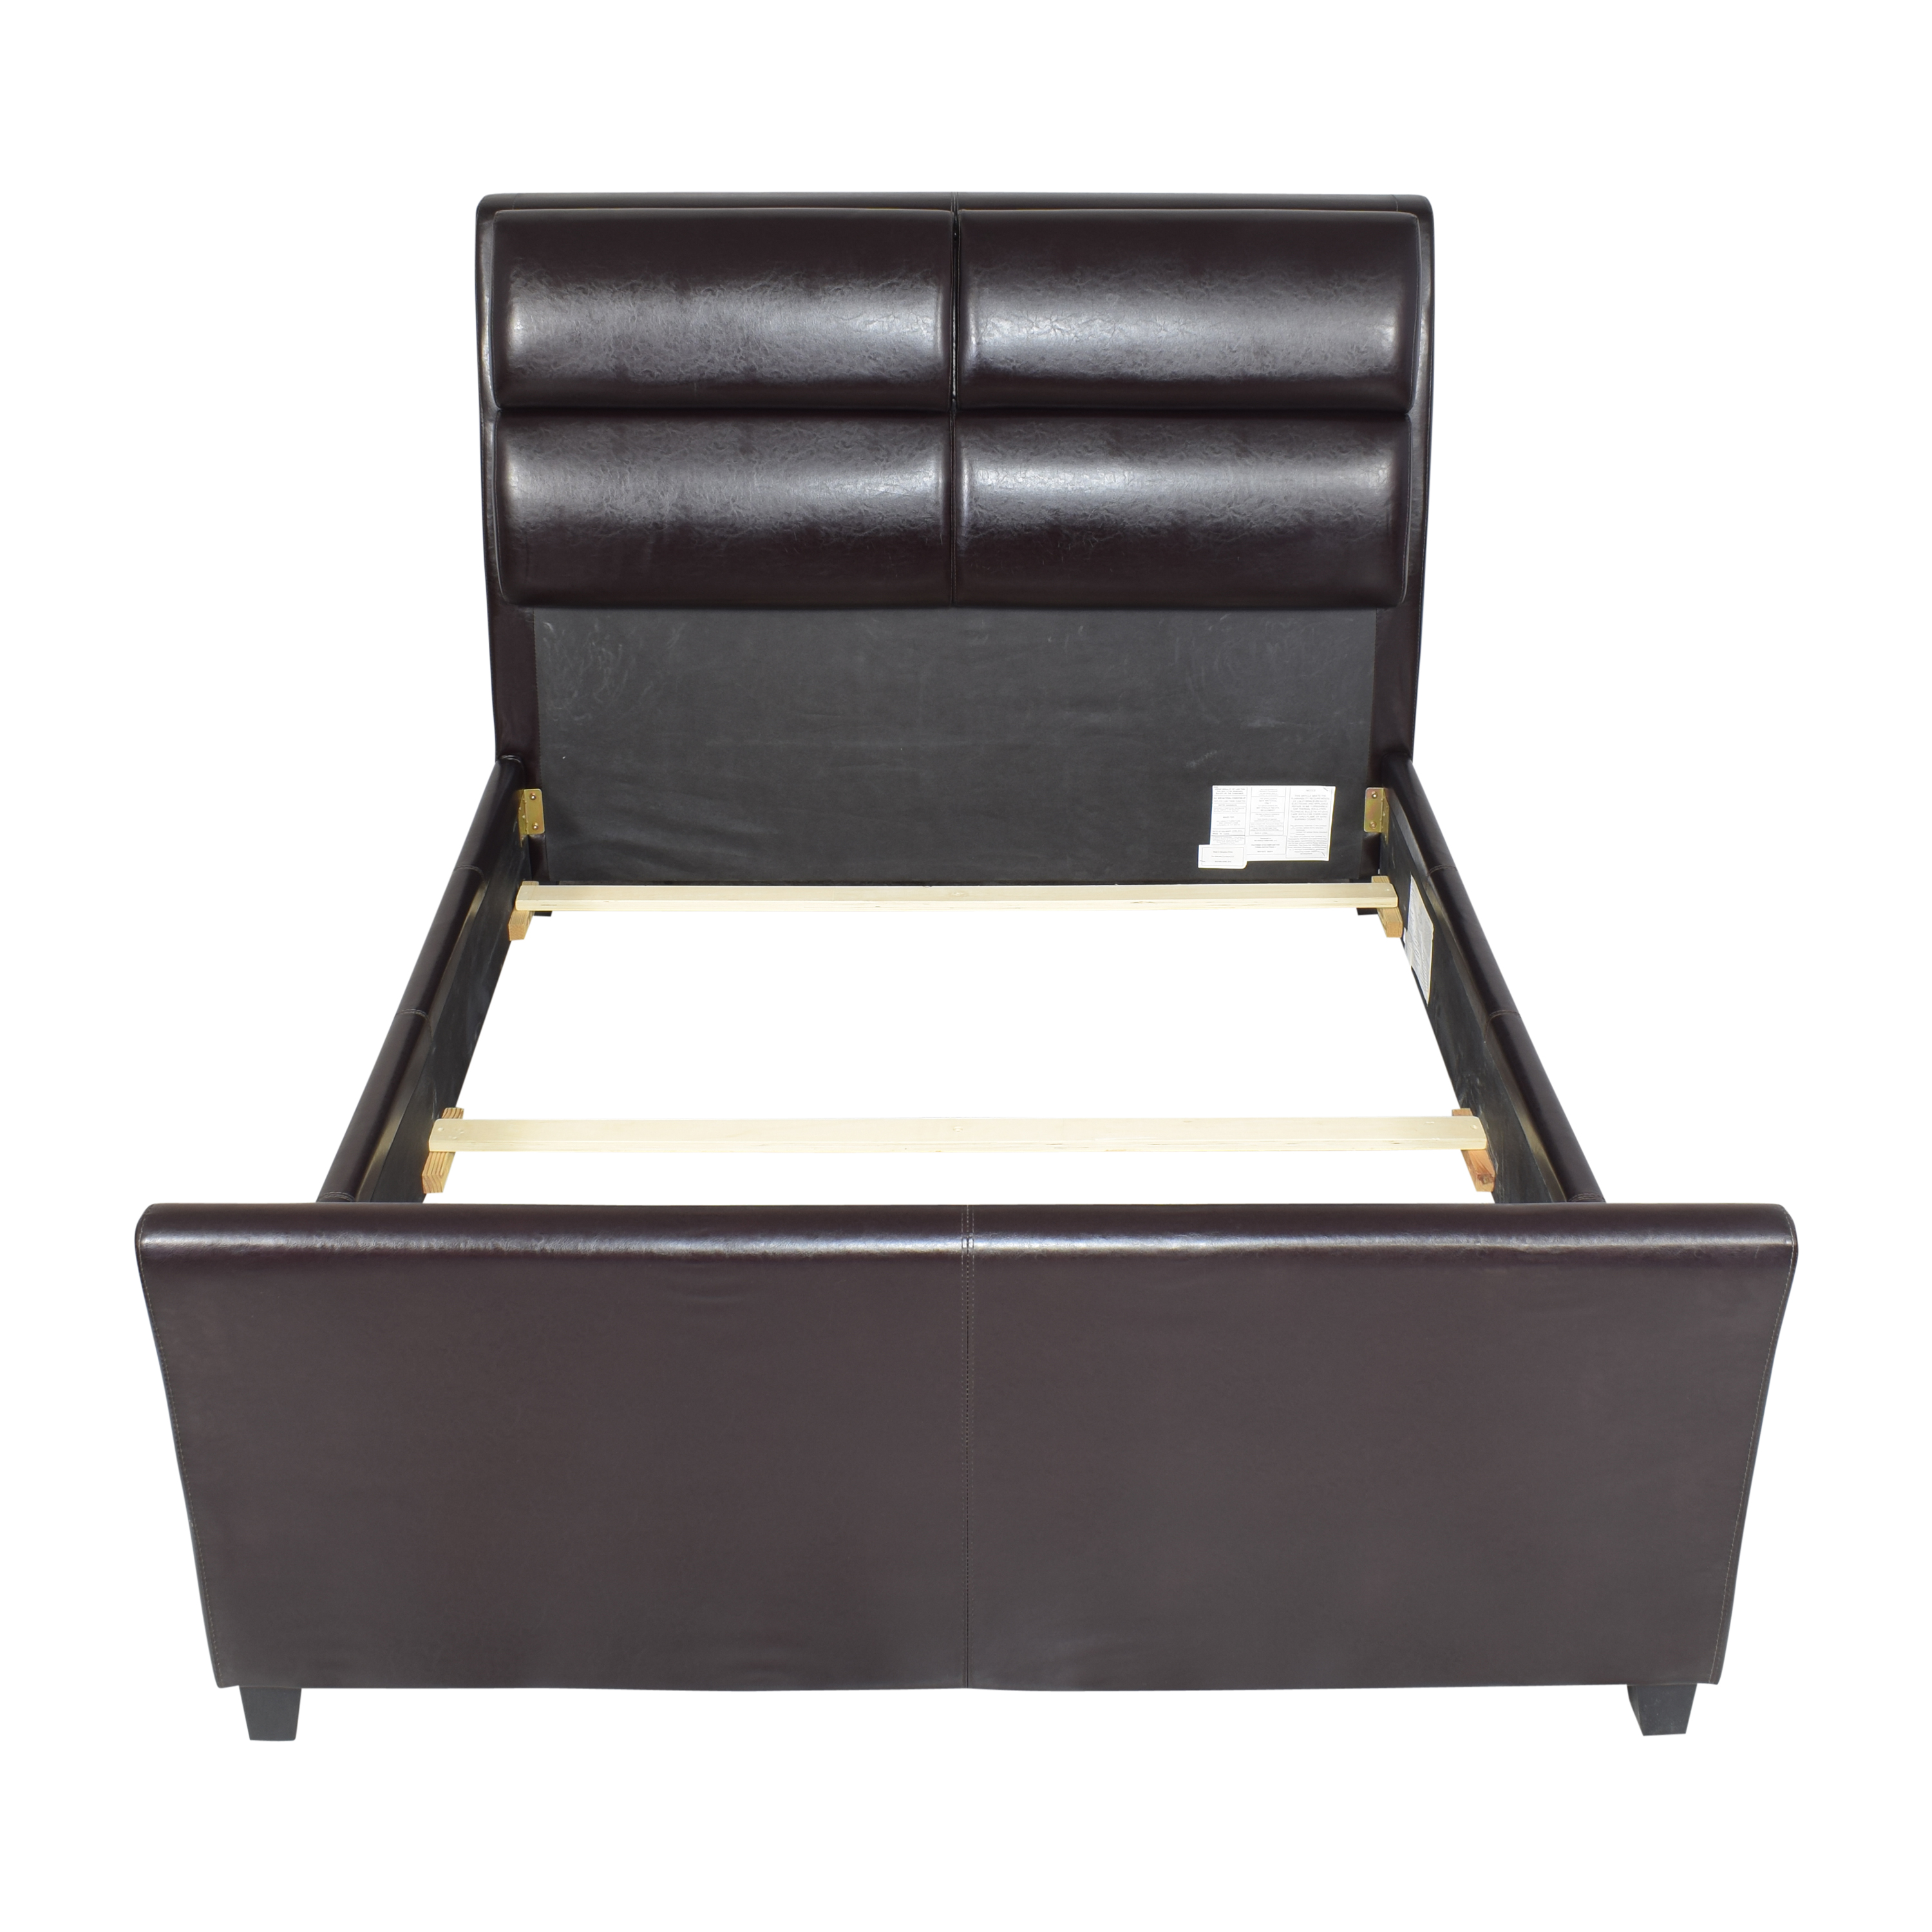 Hillsdale Furniture Hillsdale Furniture Queen Sleigh Bed for sale